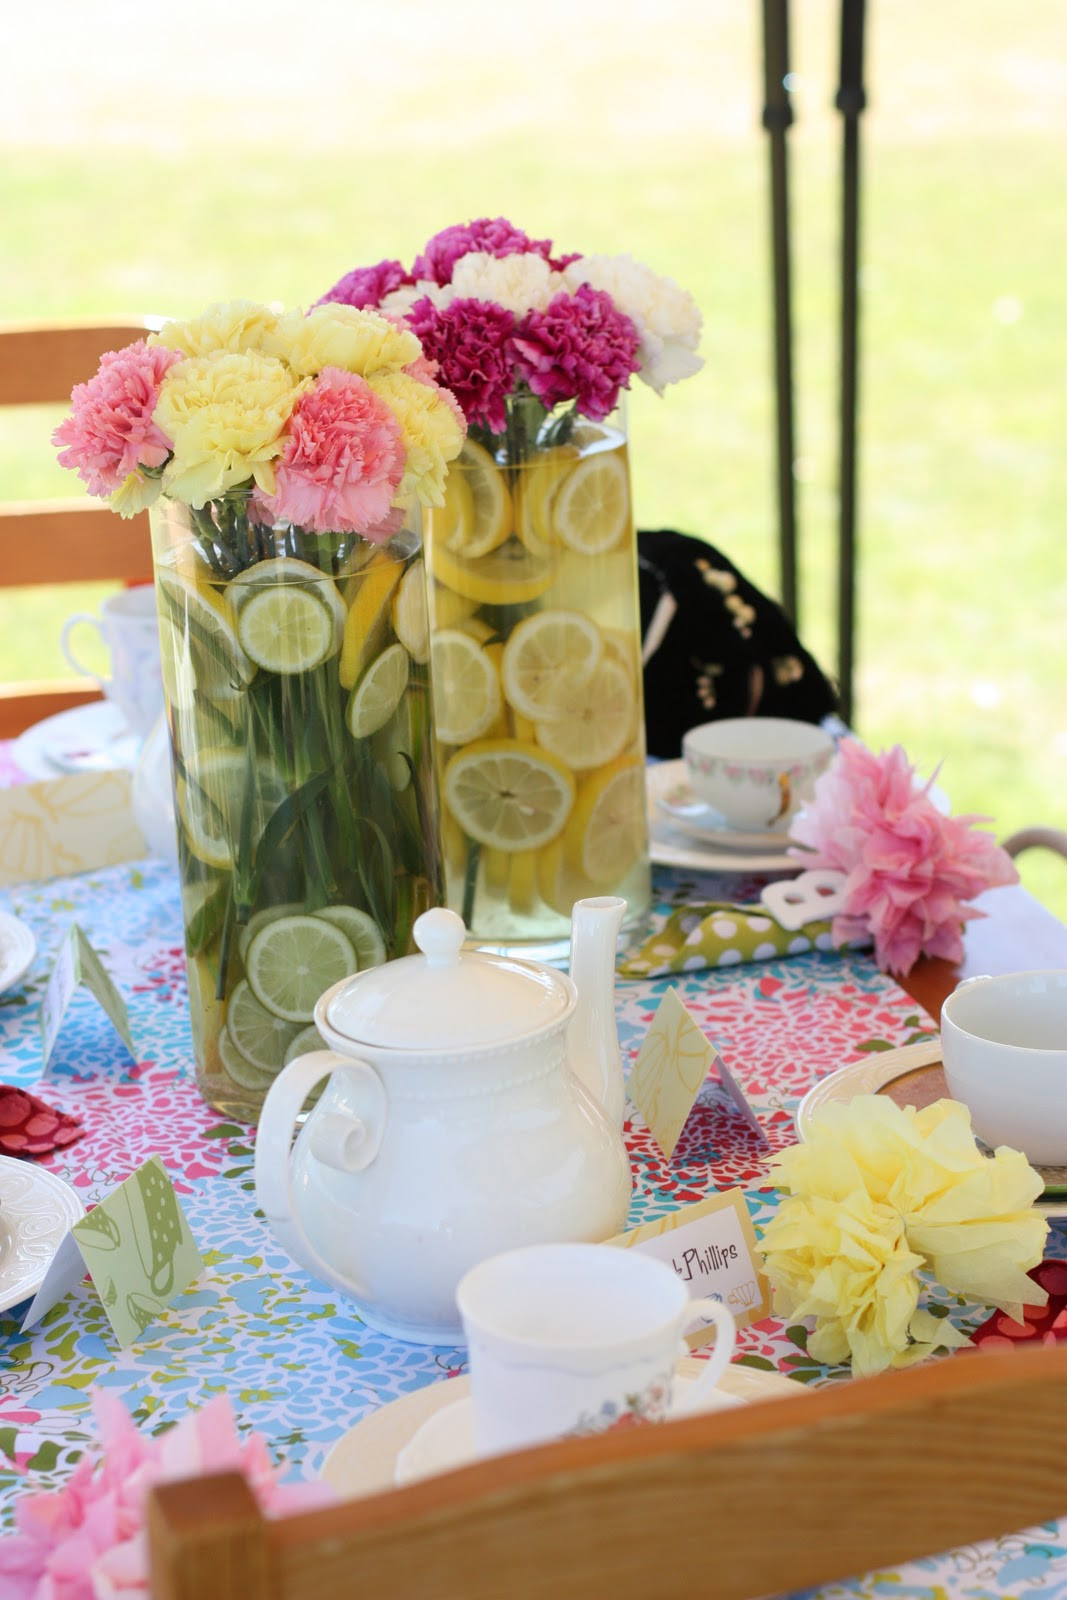 Birthday Brunch Ideas  Kara s Party Ideas Mother Daughter Tea Party 3rd Birthday